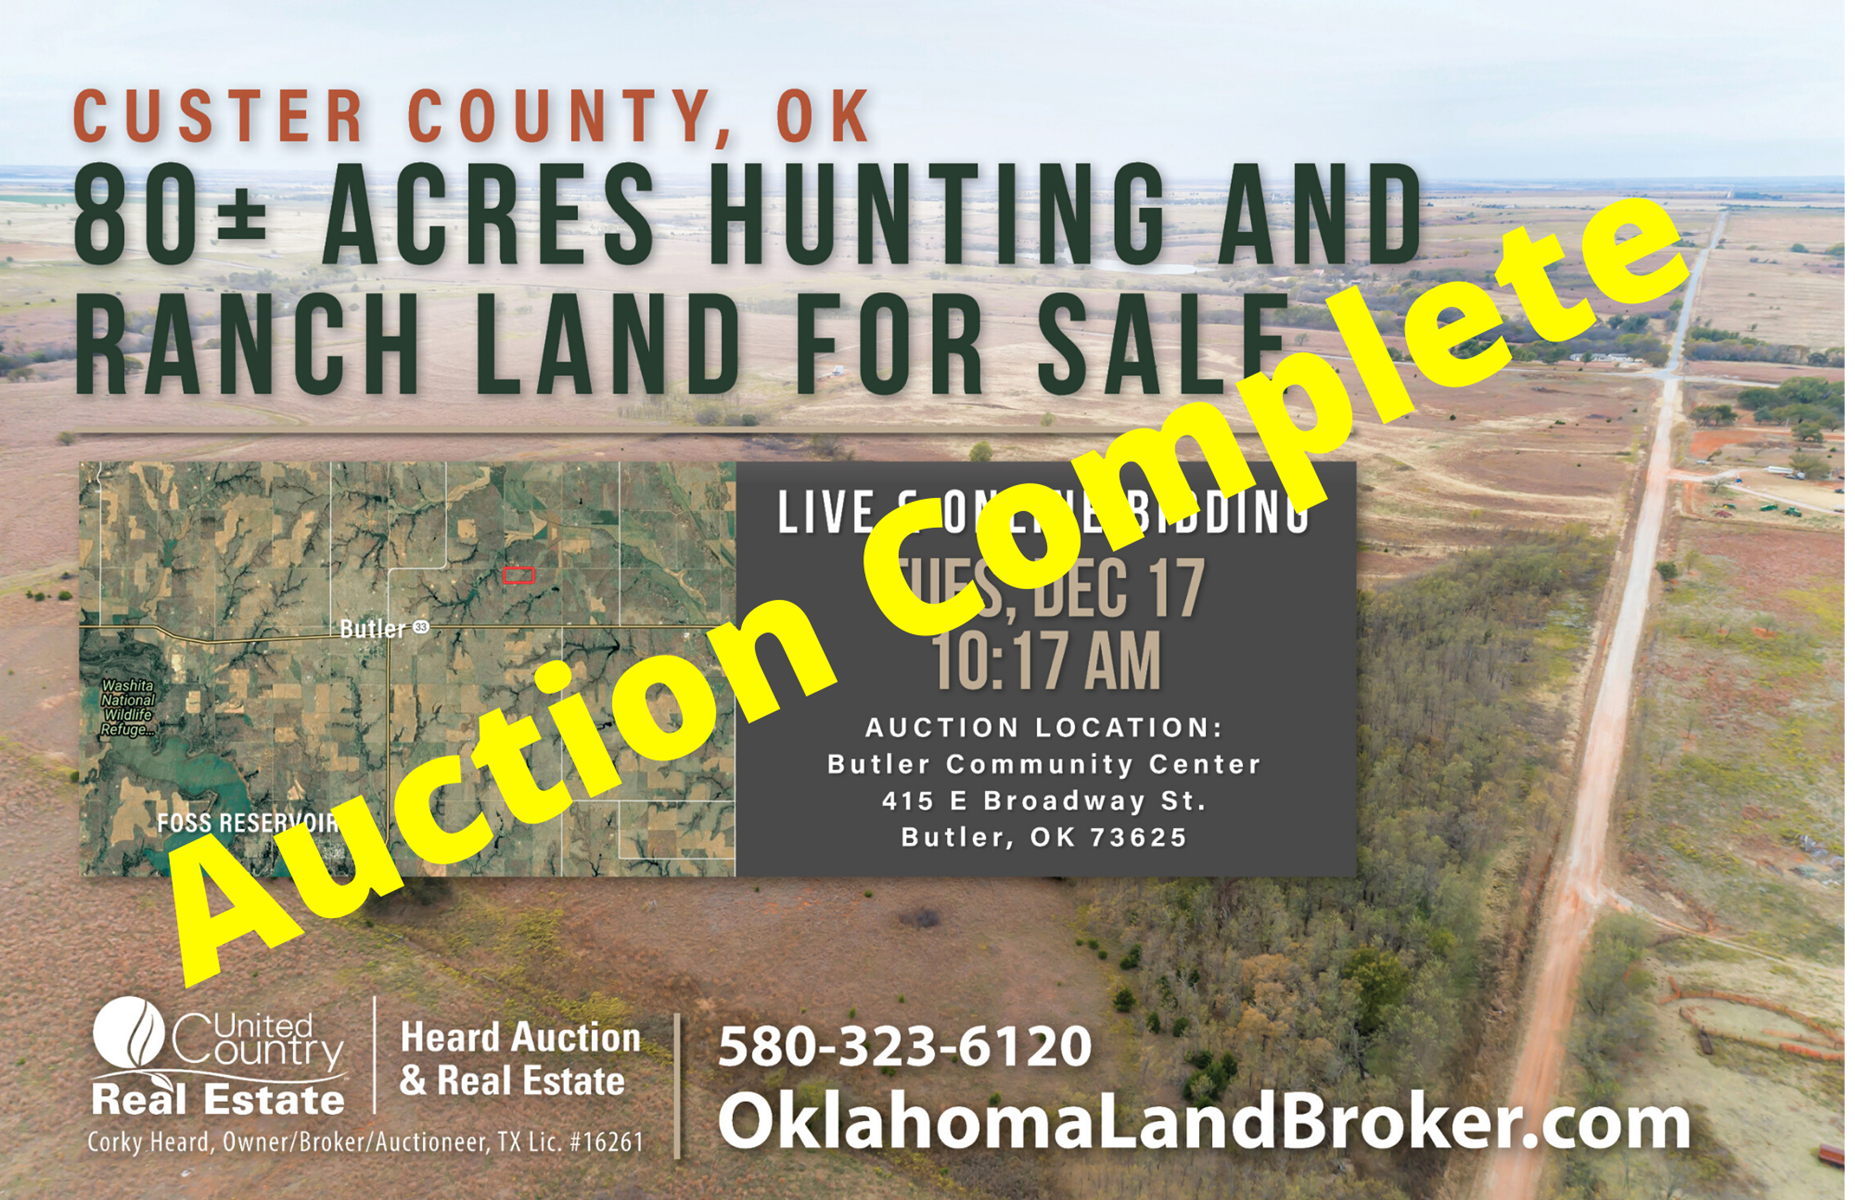 Hunting and Ranch Land for Sale, Custer County OK